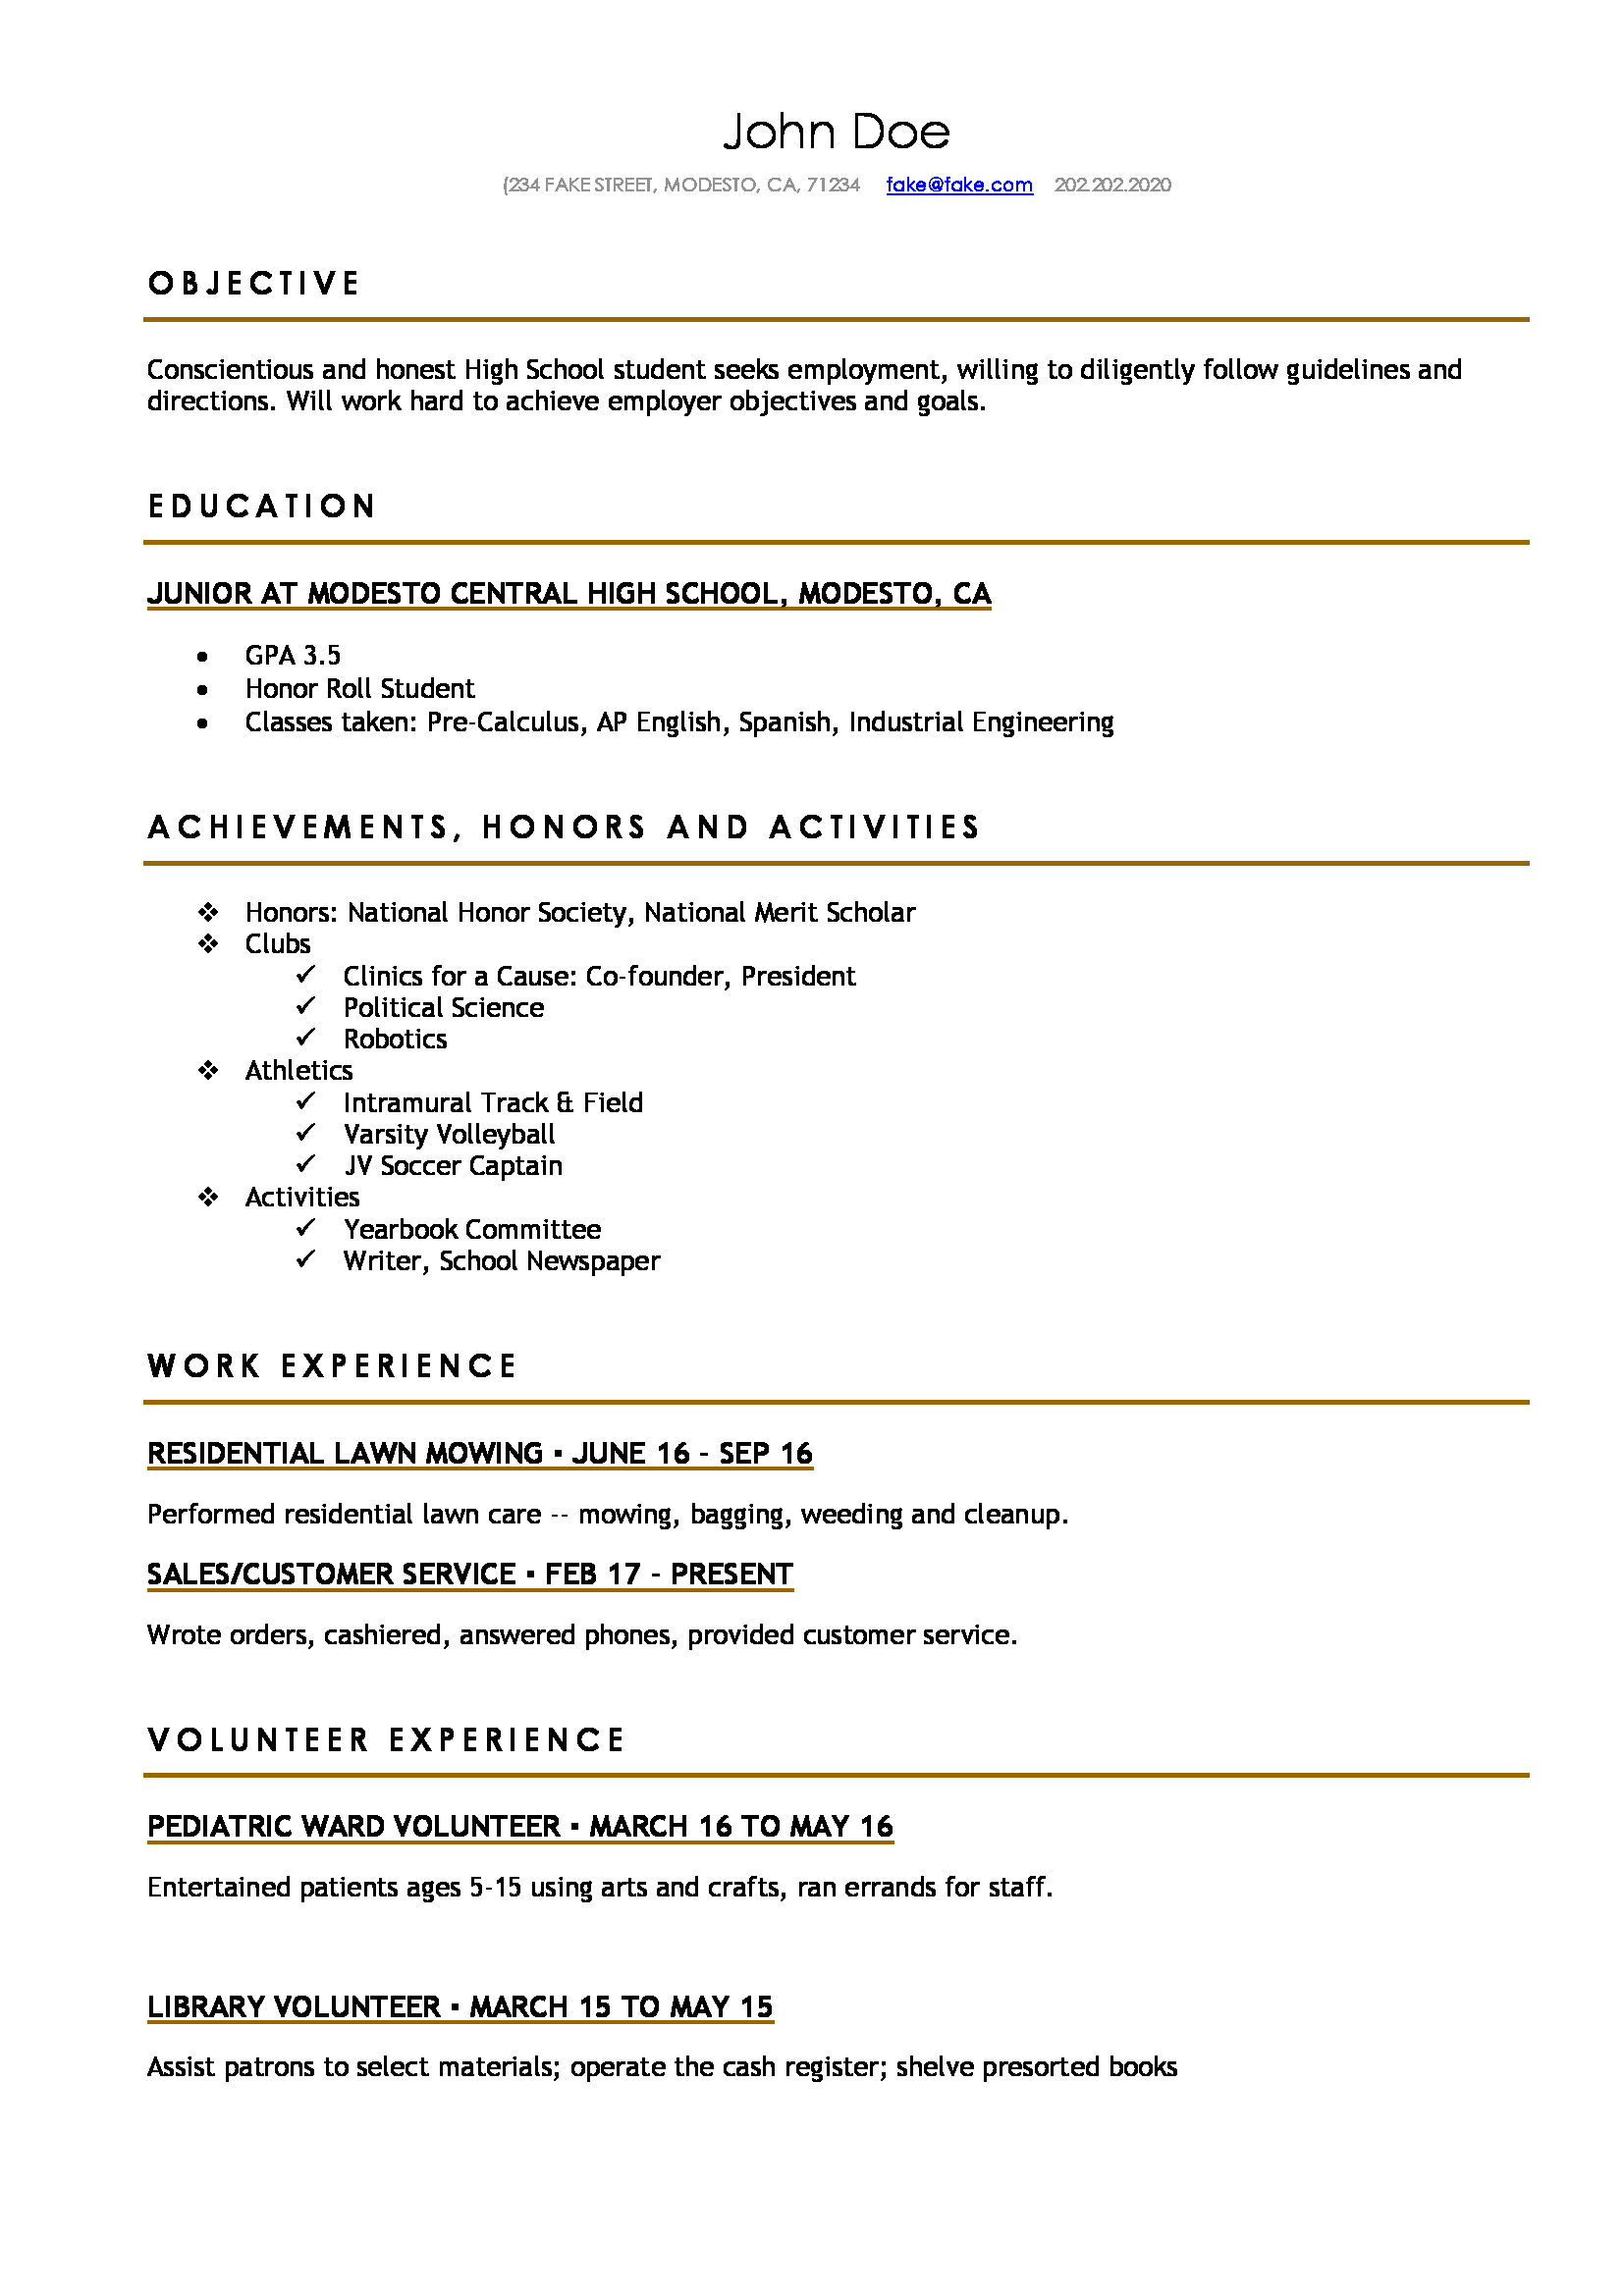 Resume writing for high school students lesson plan